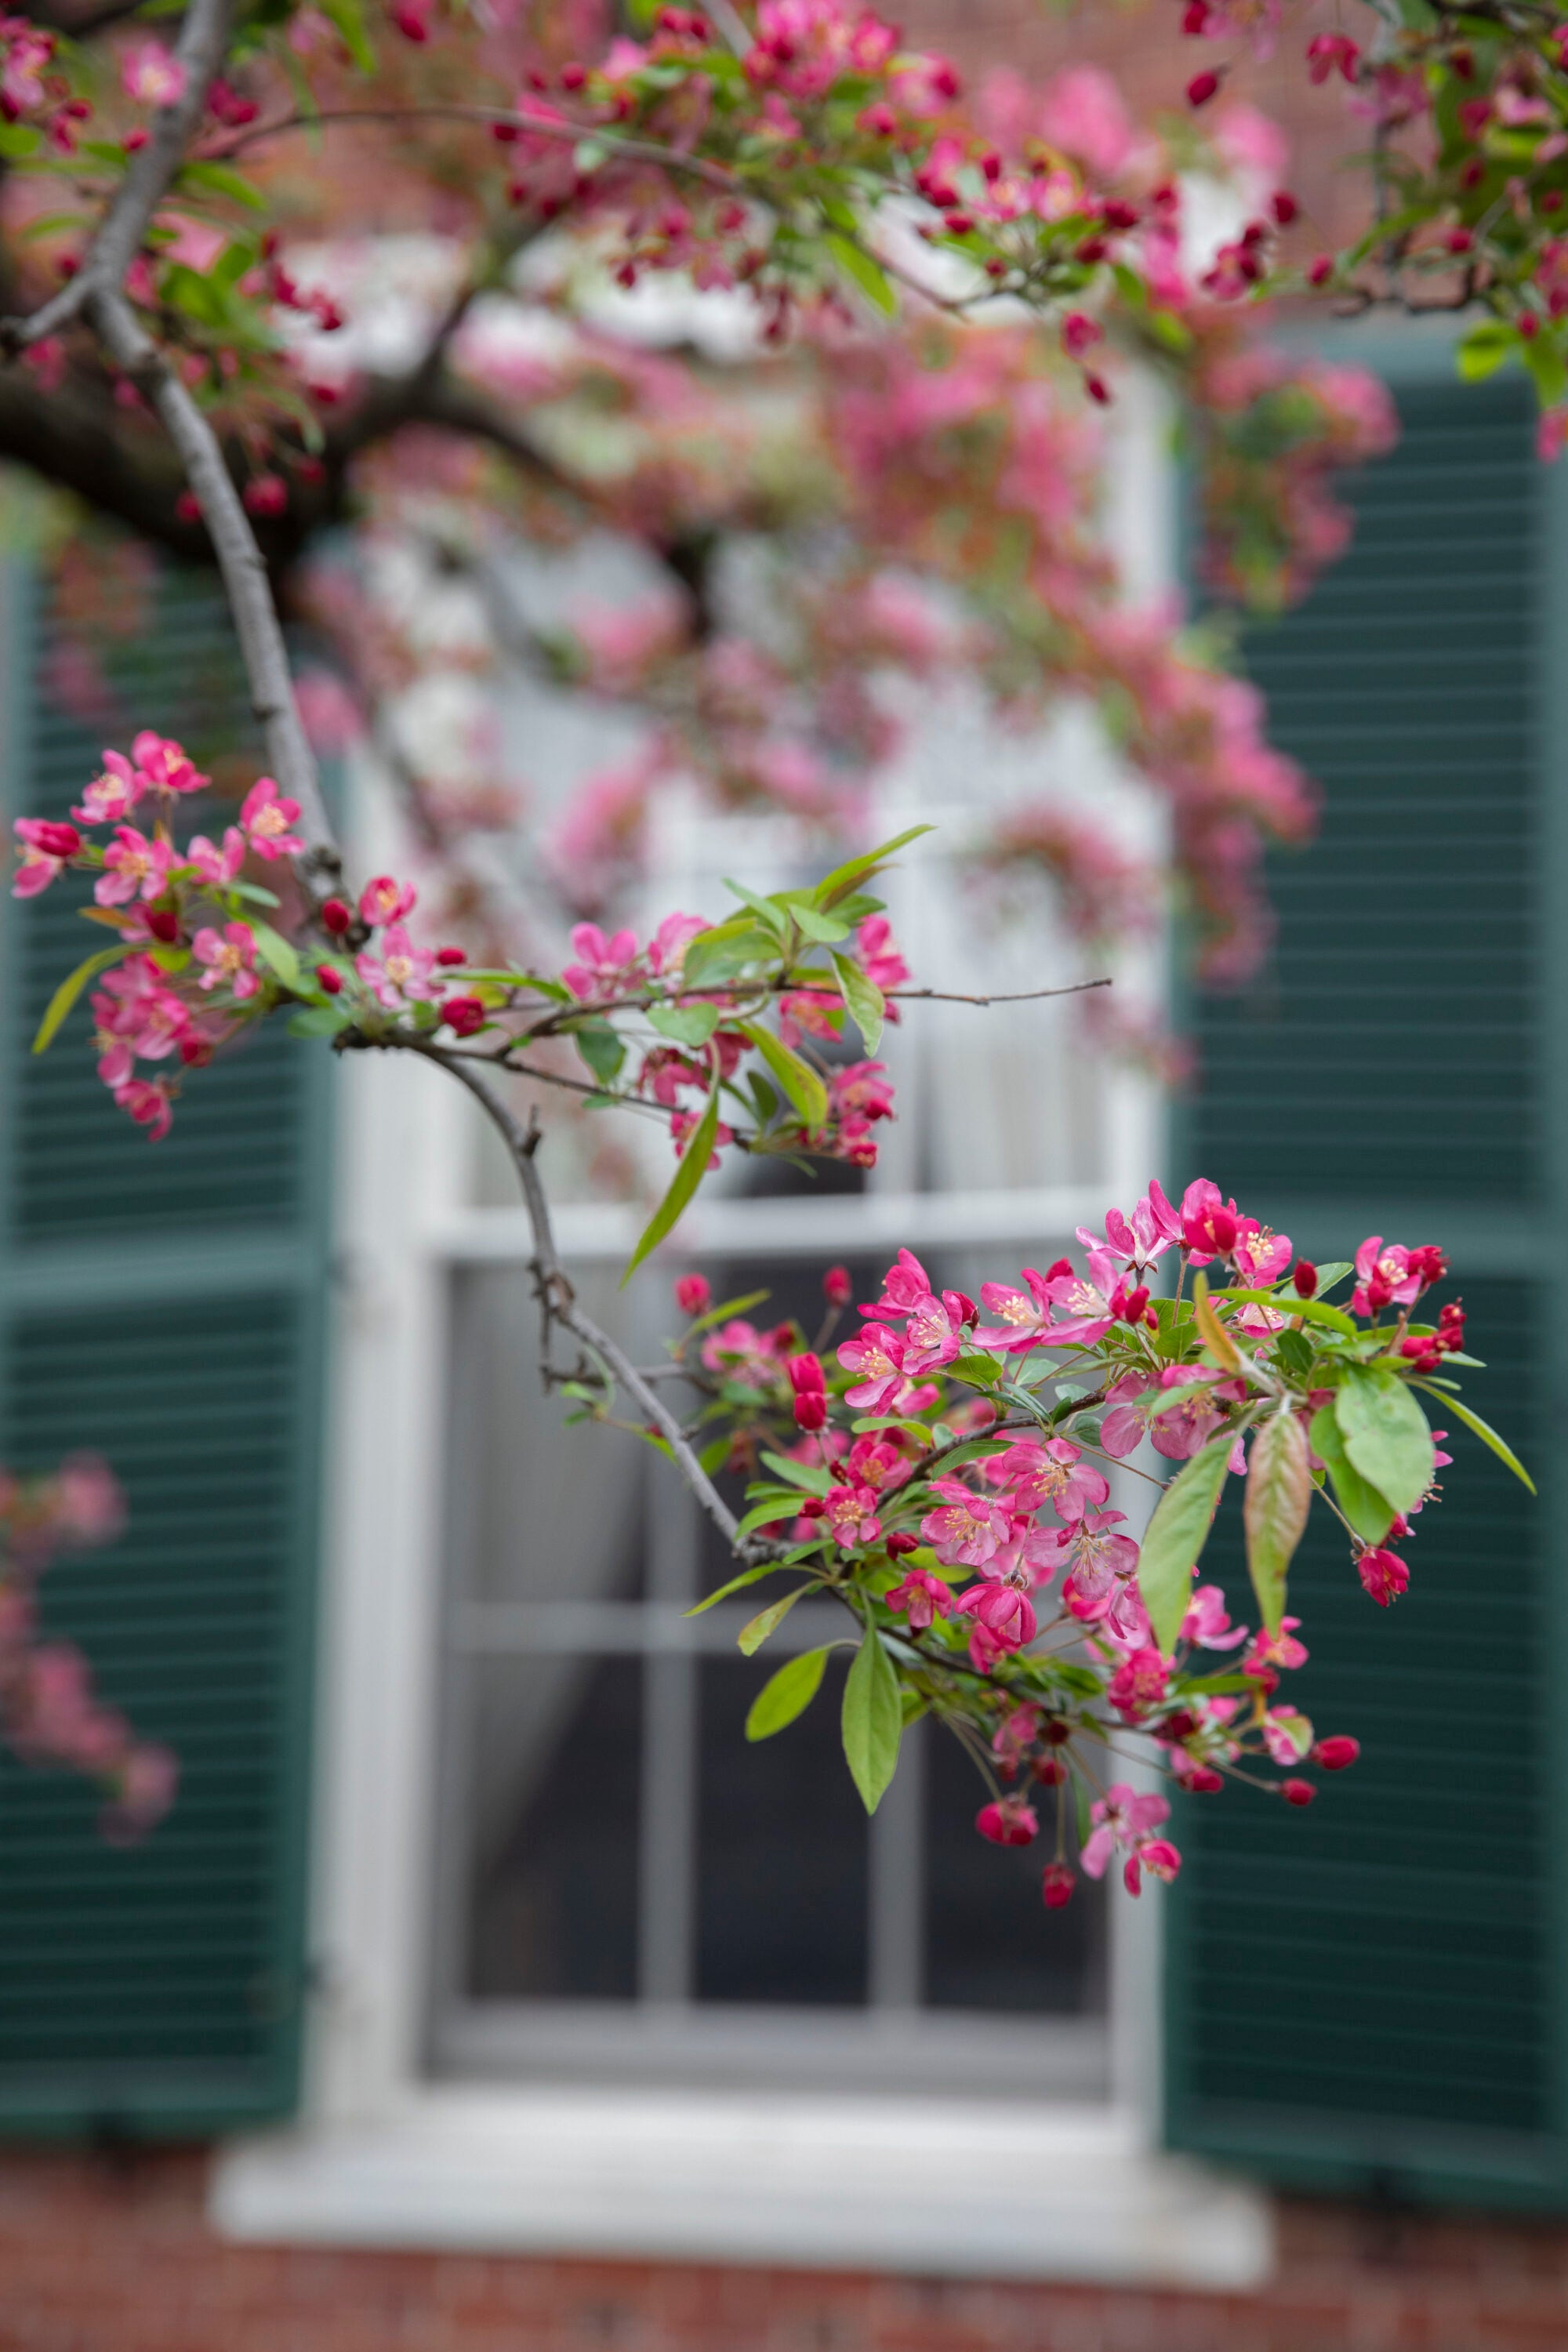 Red flowers and green leaves on a branch in front of a window